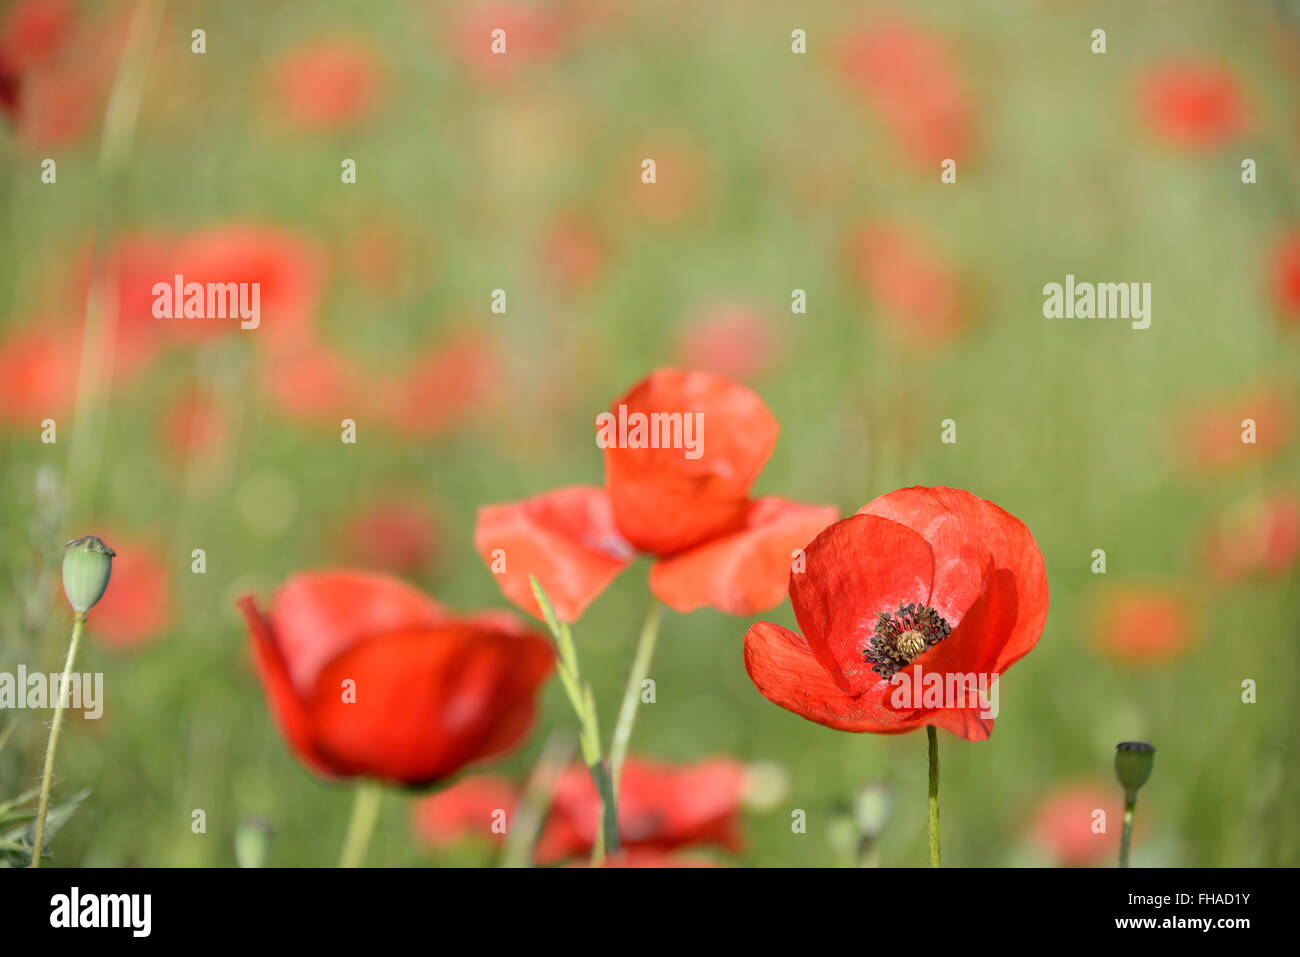 One sharp vibrant red poppy flower (papaver rhoeas) in a field filled with out-of-focus poppies as a symbol for - Stock Image